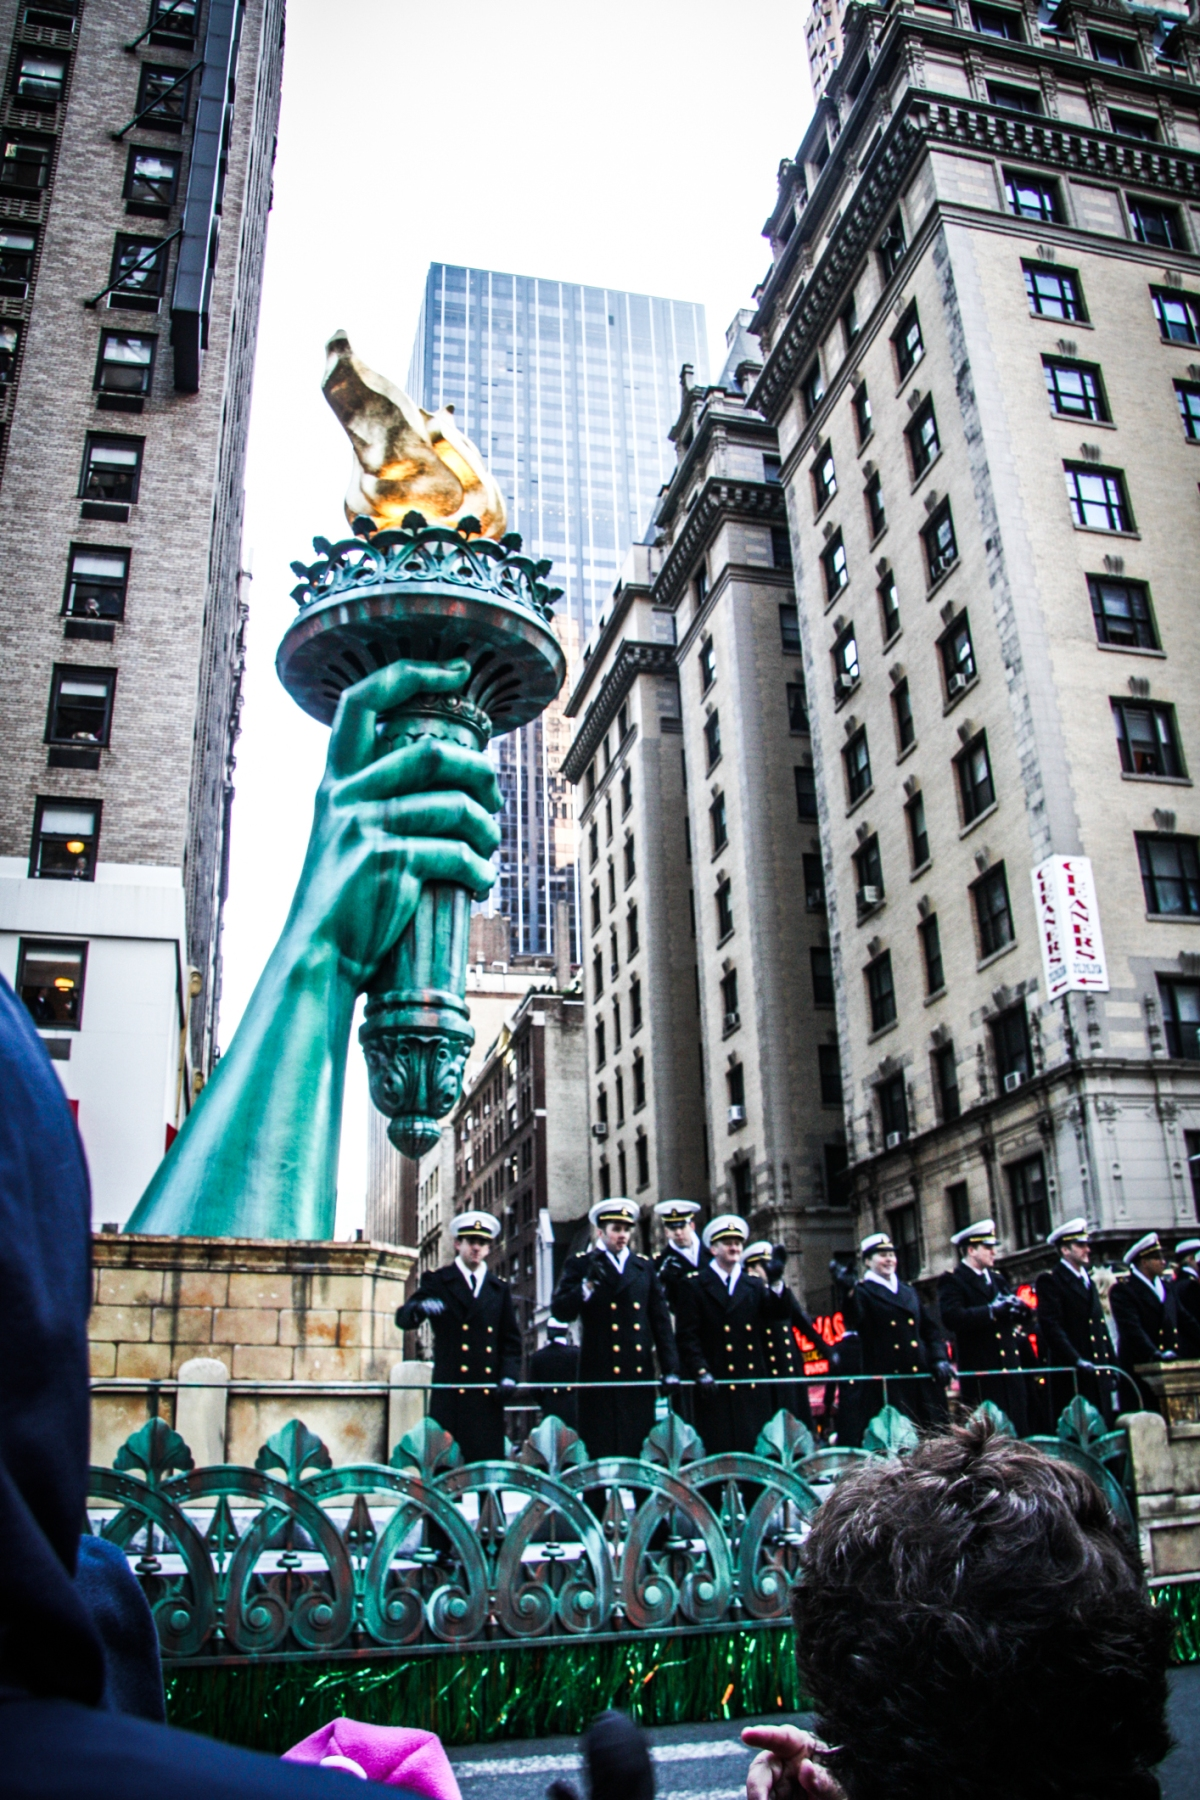 A parade float with the torch of the statue of liberty floats by in the macy's thanksgiving day parade. Not So SAHM